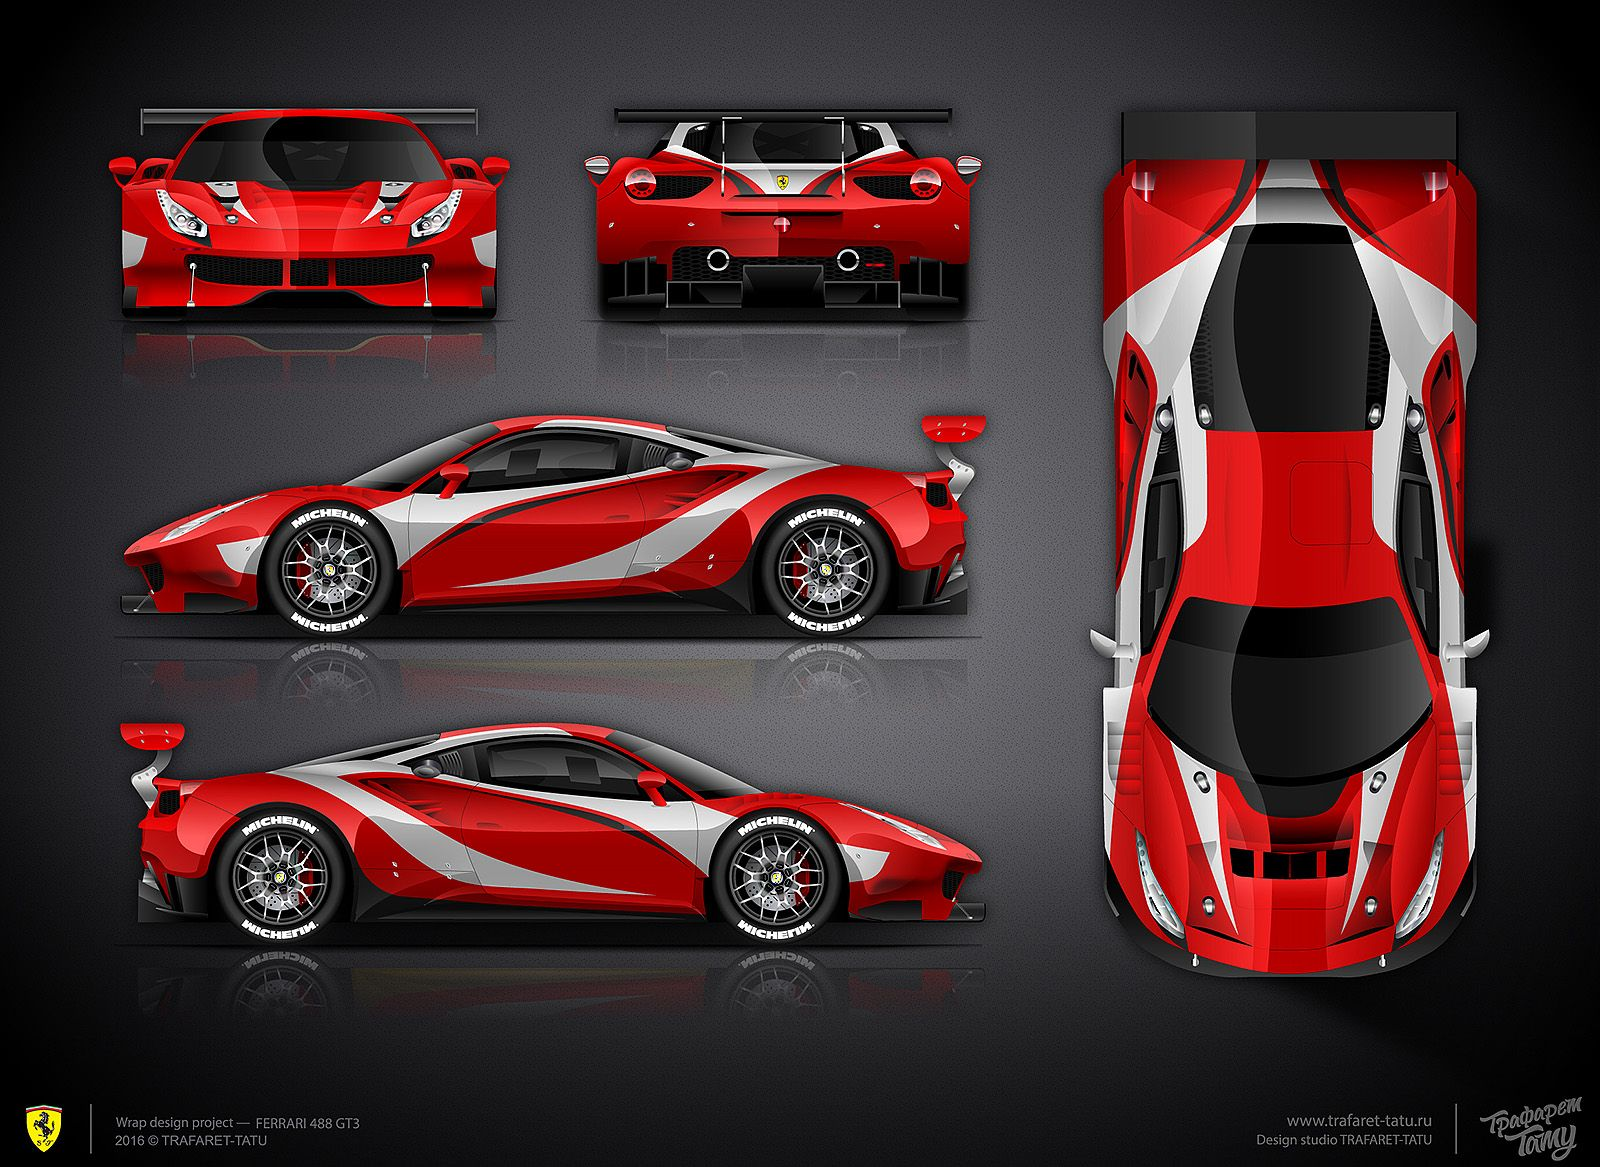 The approved livery design for ferrari 488 gt3